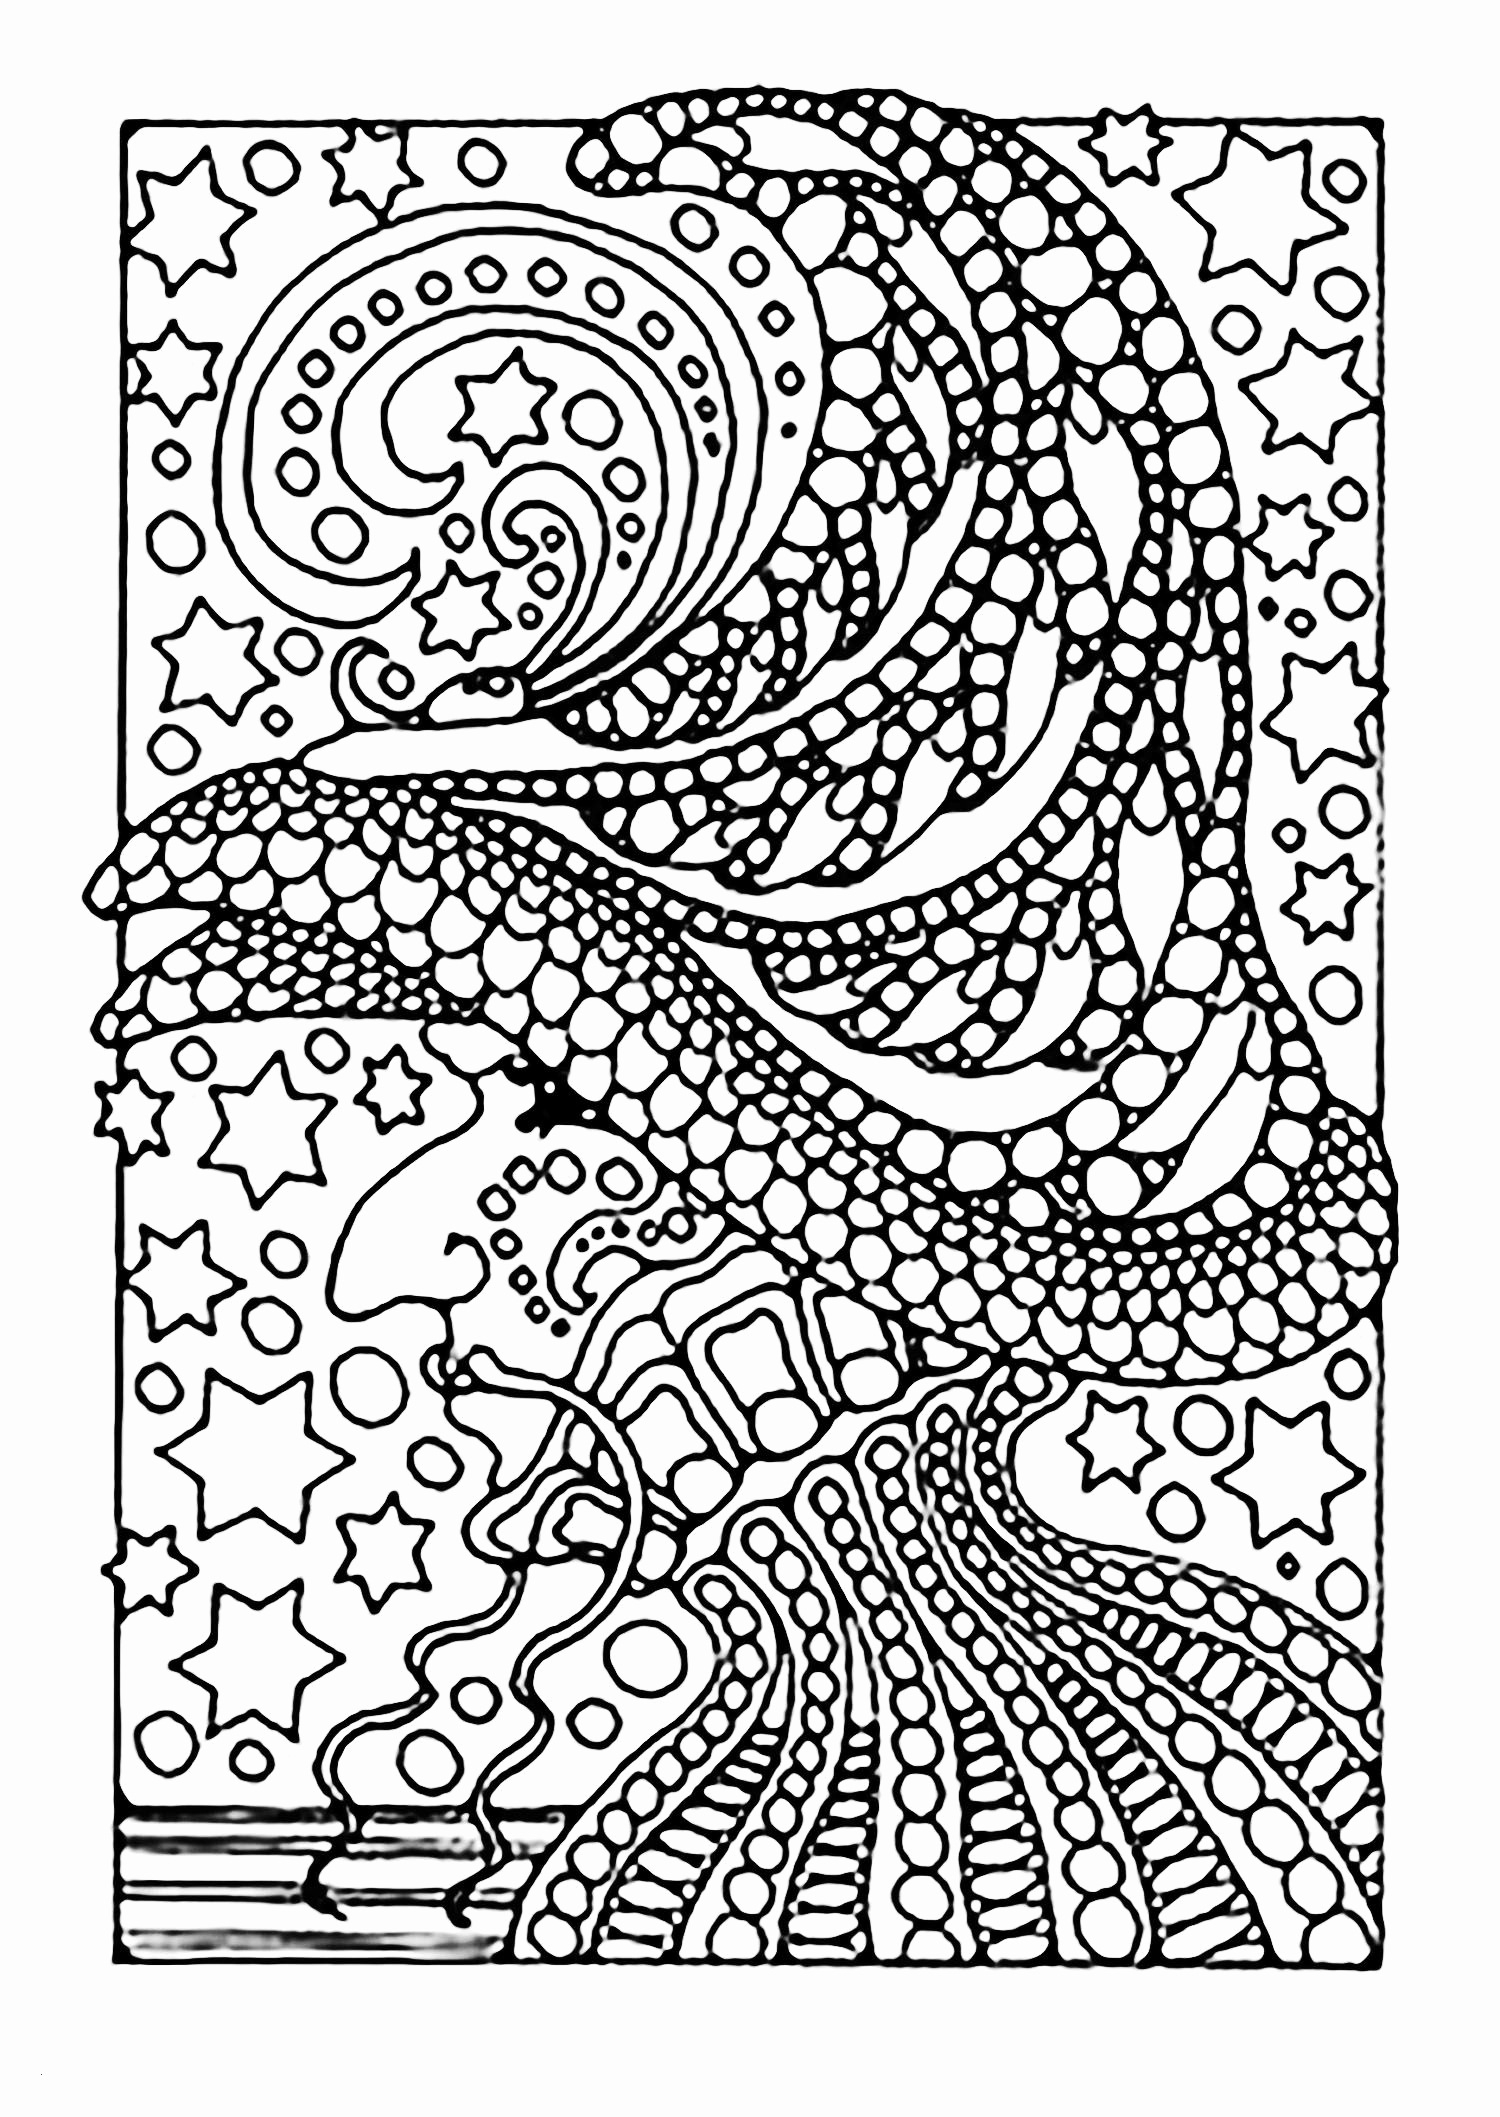 ninja turtle free coloring pages Collection-Free Printable Tmnt Coloring Pages Ninja Turtle Free Coloring Pages Stylish Cool Coloring Page Unique 17-d